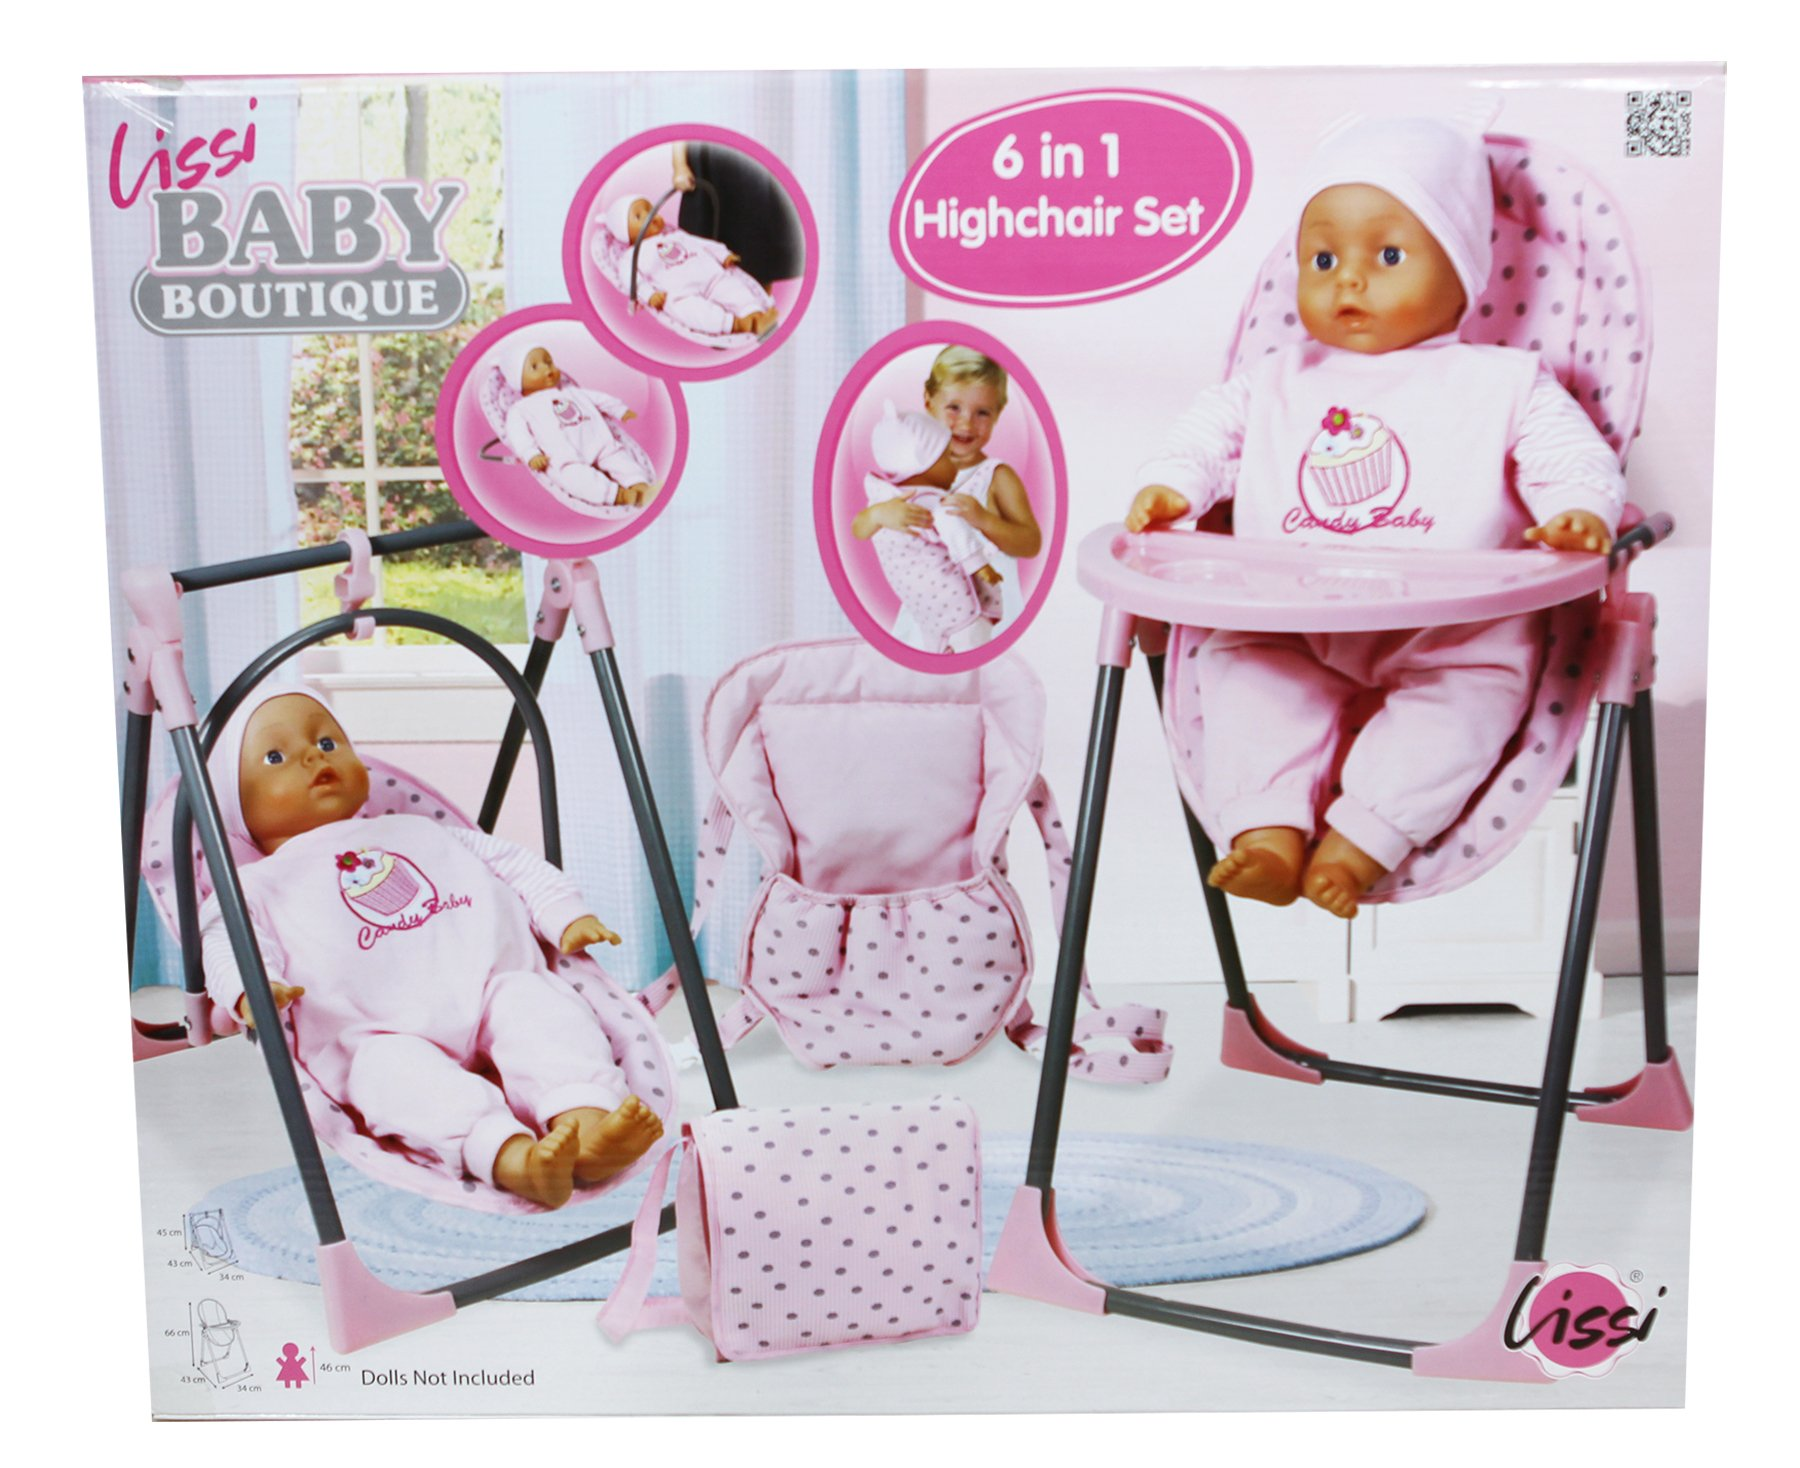 Lissi Convertible Doll Highchair Play Set with